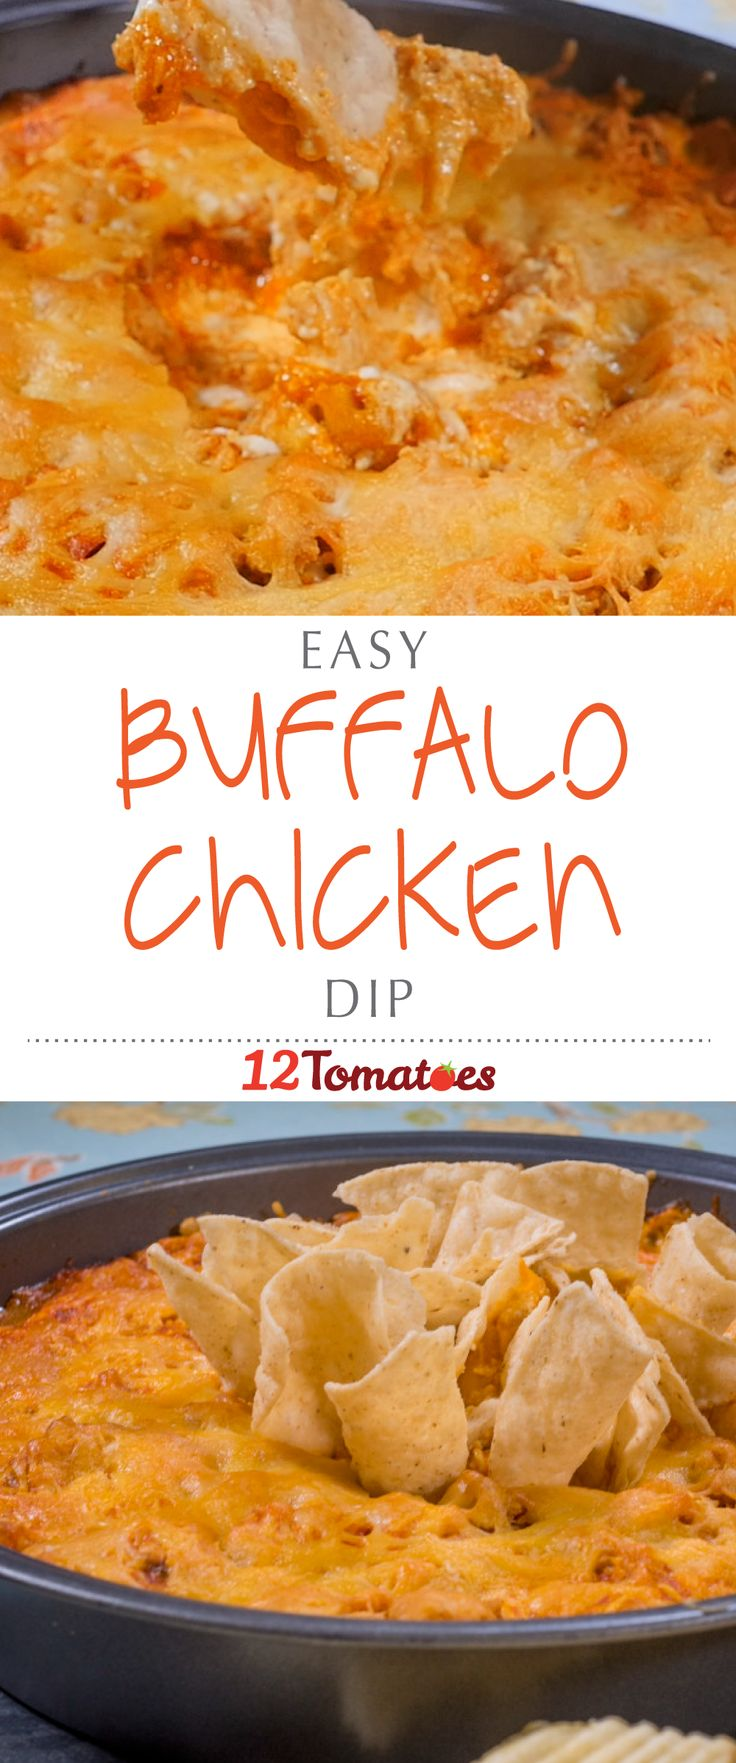 Buffalo Chicken Dip | Hot and spicy and packed with chicken and cheese, this dip is exactly what you need…just be warned: the people will gather 'round, so make sure to get your fill early on – this stuff is addictive!